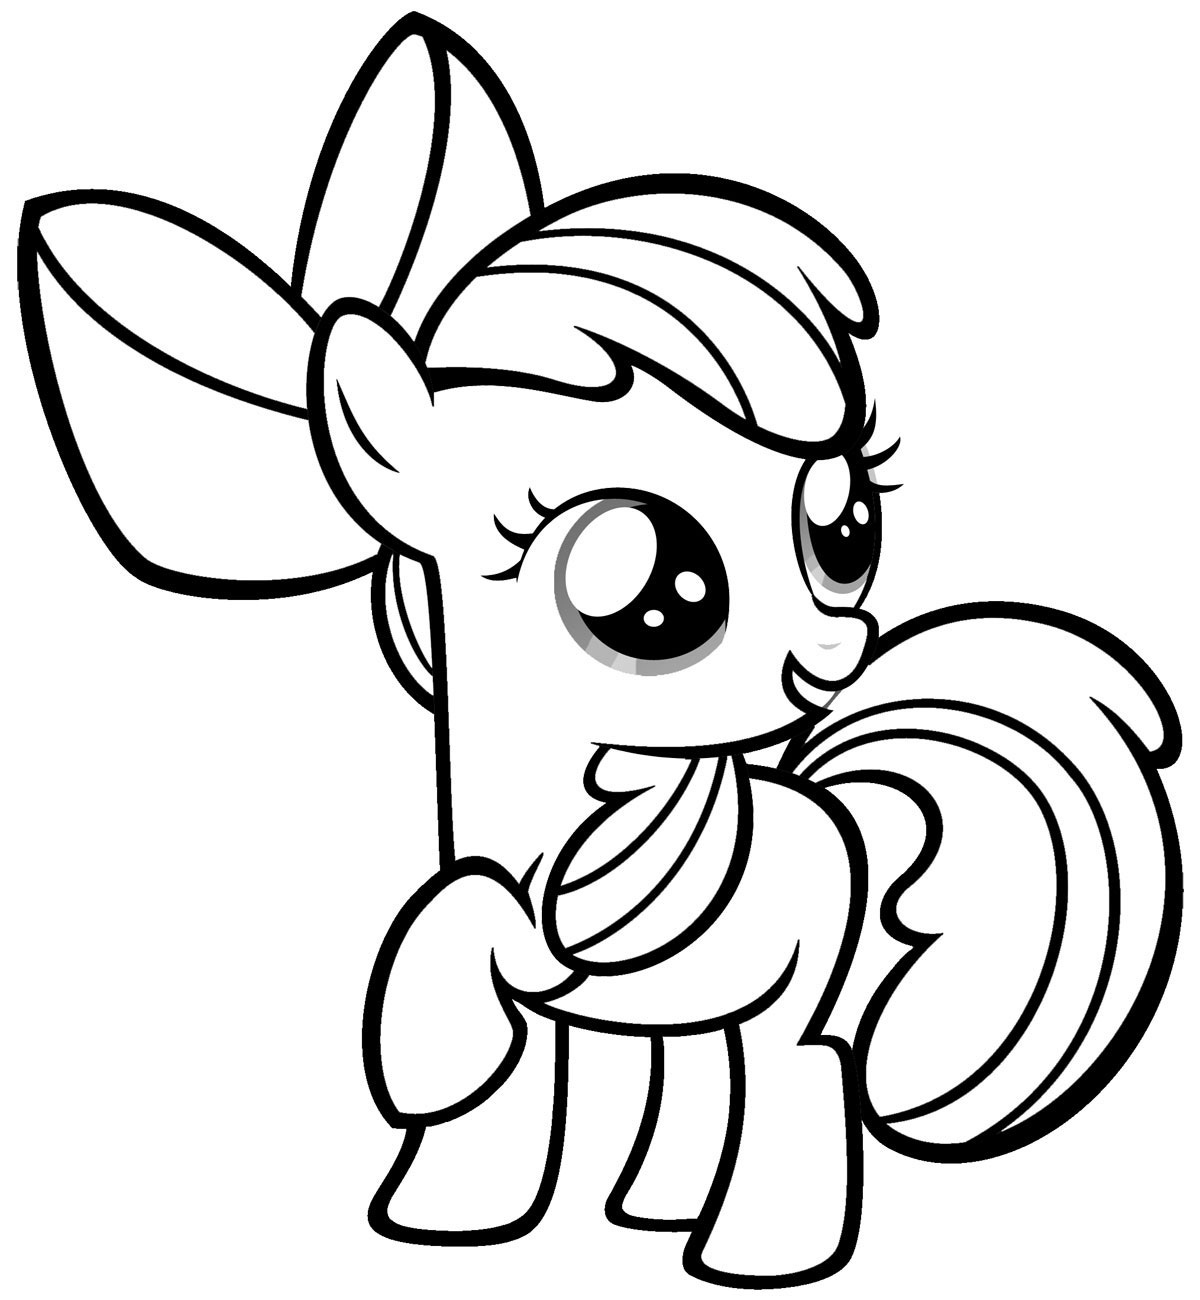 My Little Pony Coloring Sheets 2018- Dr. Odd